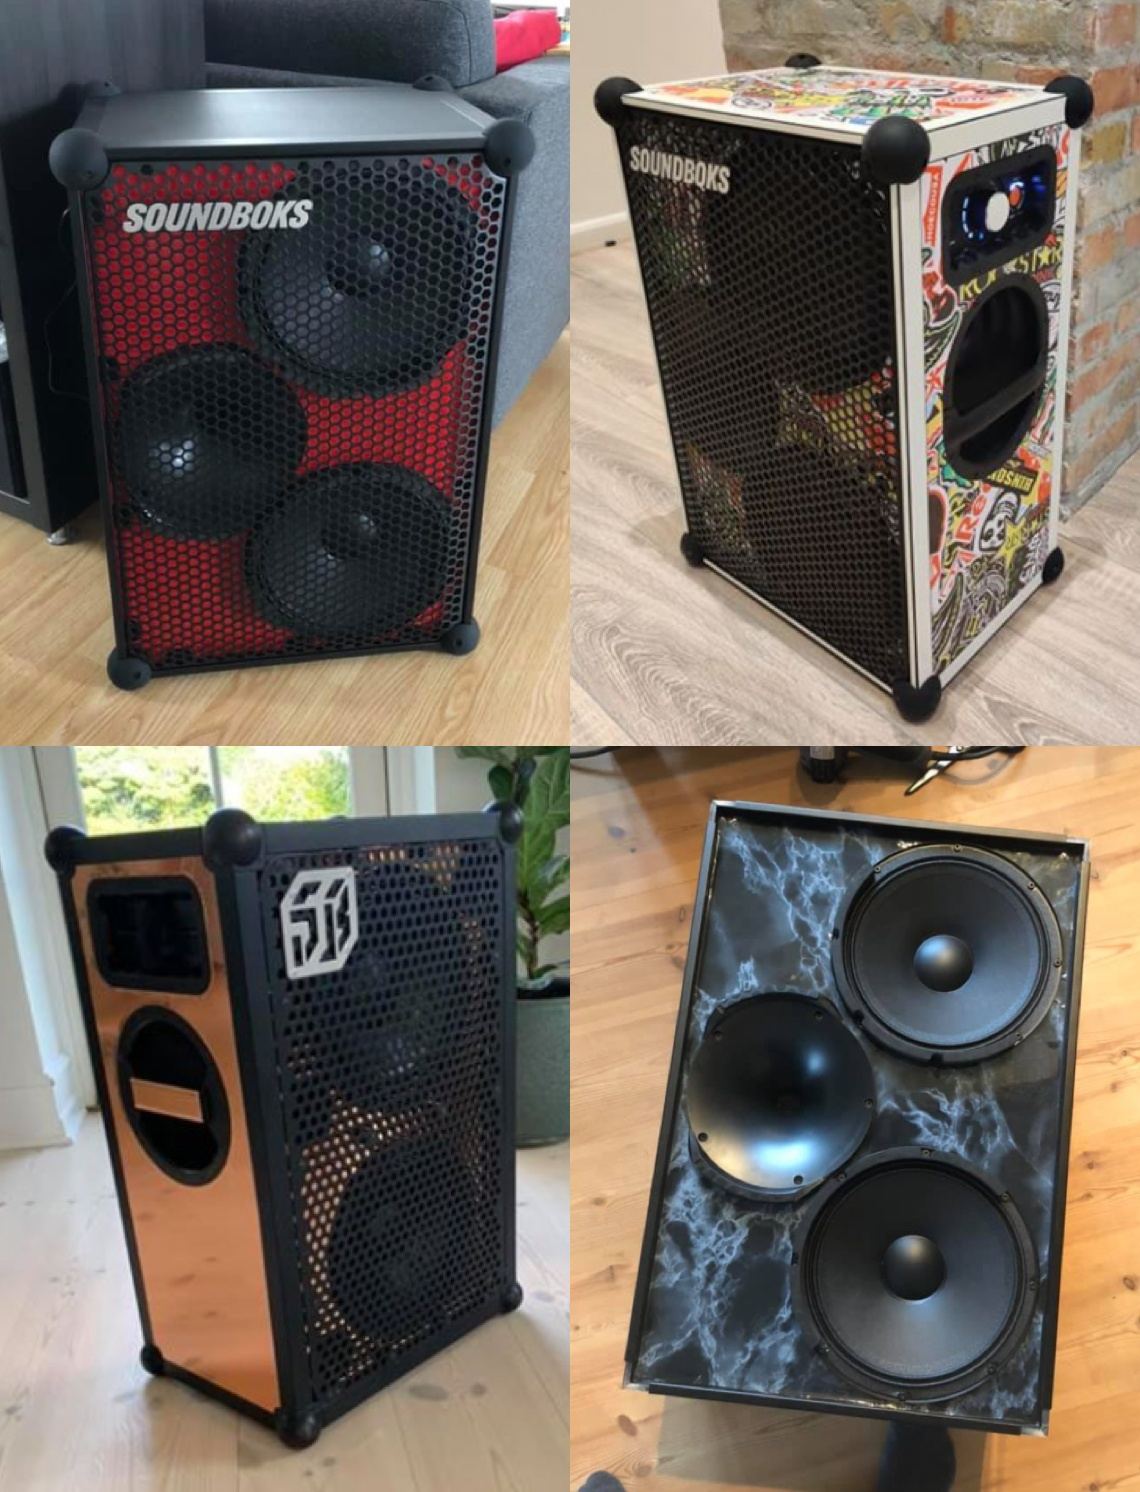 collage of SOUNDBOKS speakers customized by the community